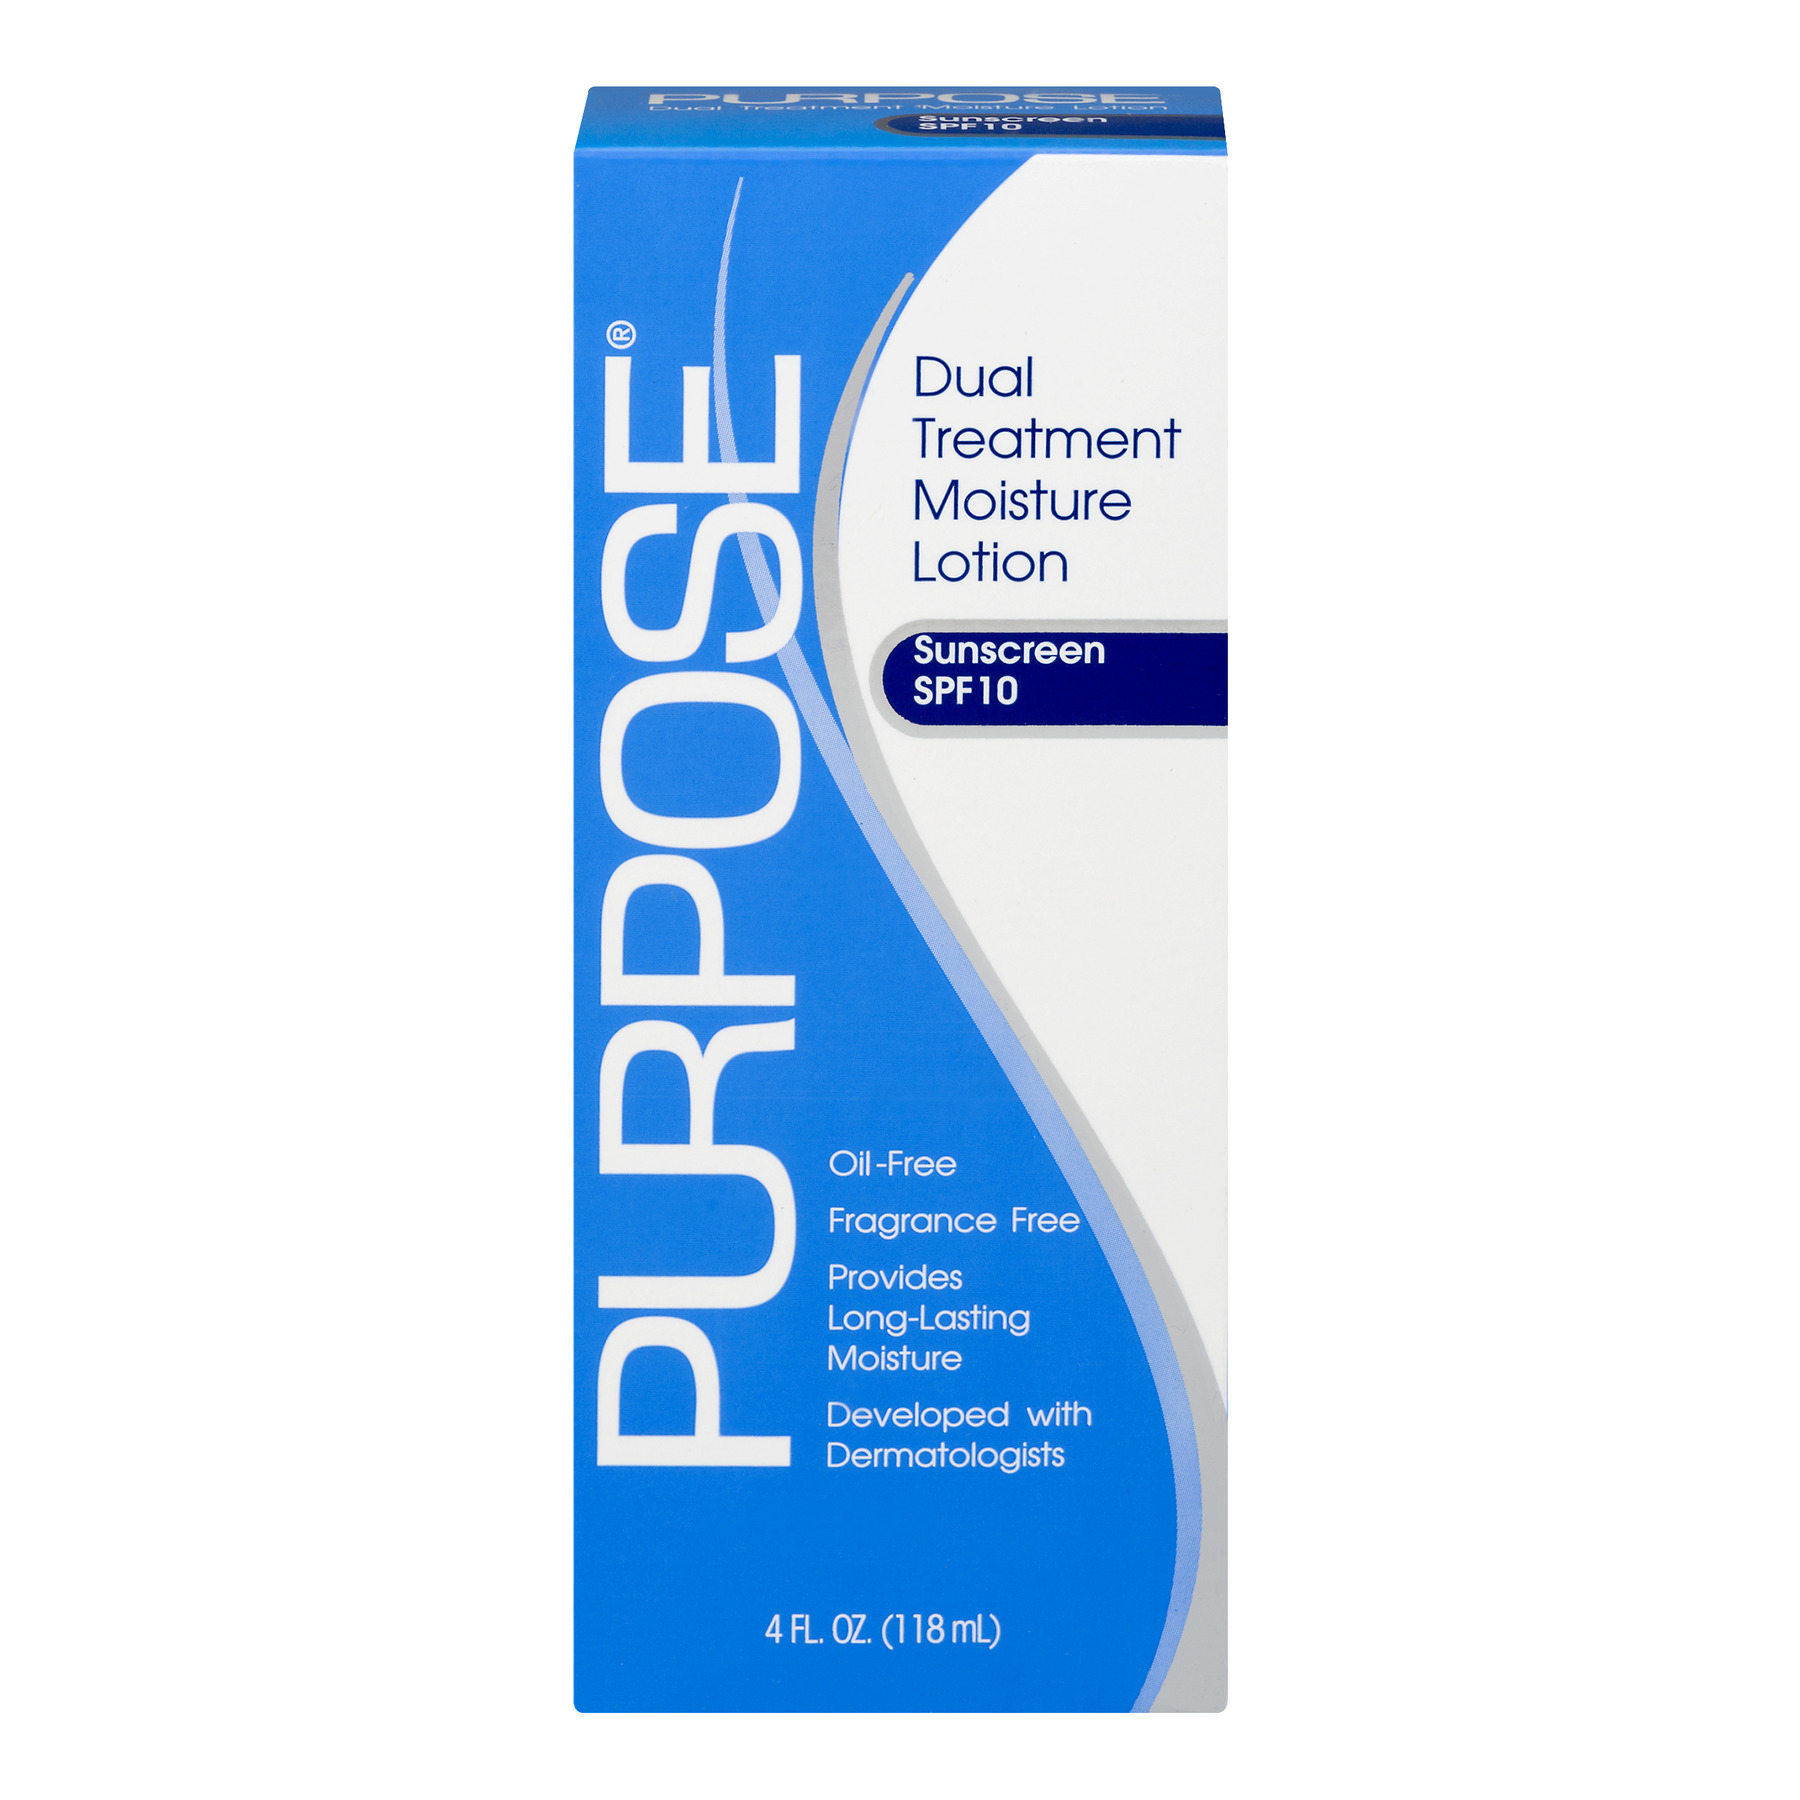 Purpose Dual Treatment Moisture Lotion Sunscreen SPF 10, 4.0 FL OZ